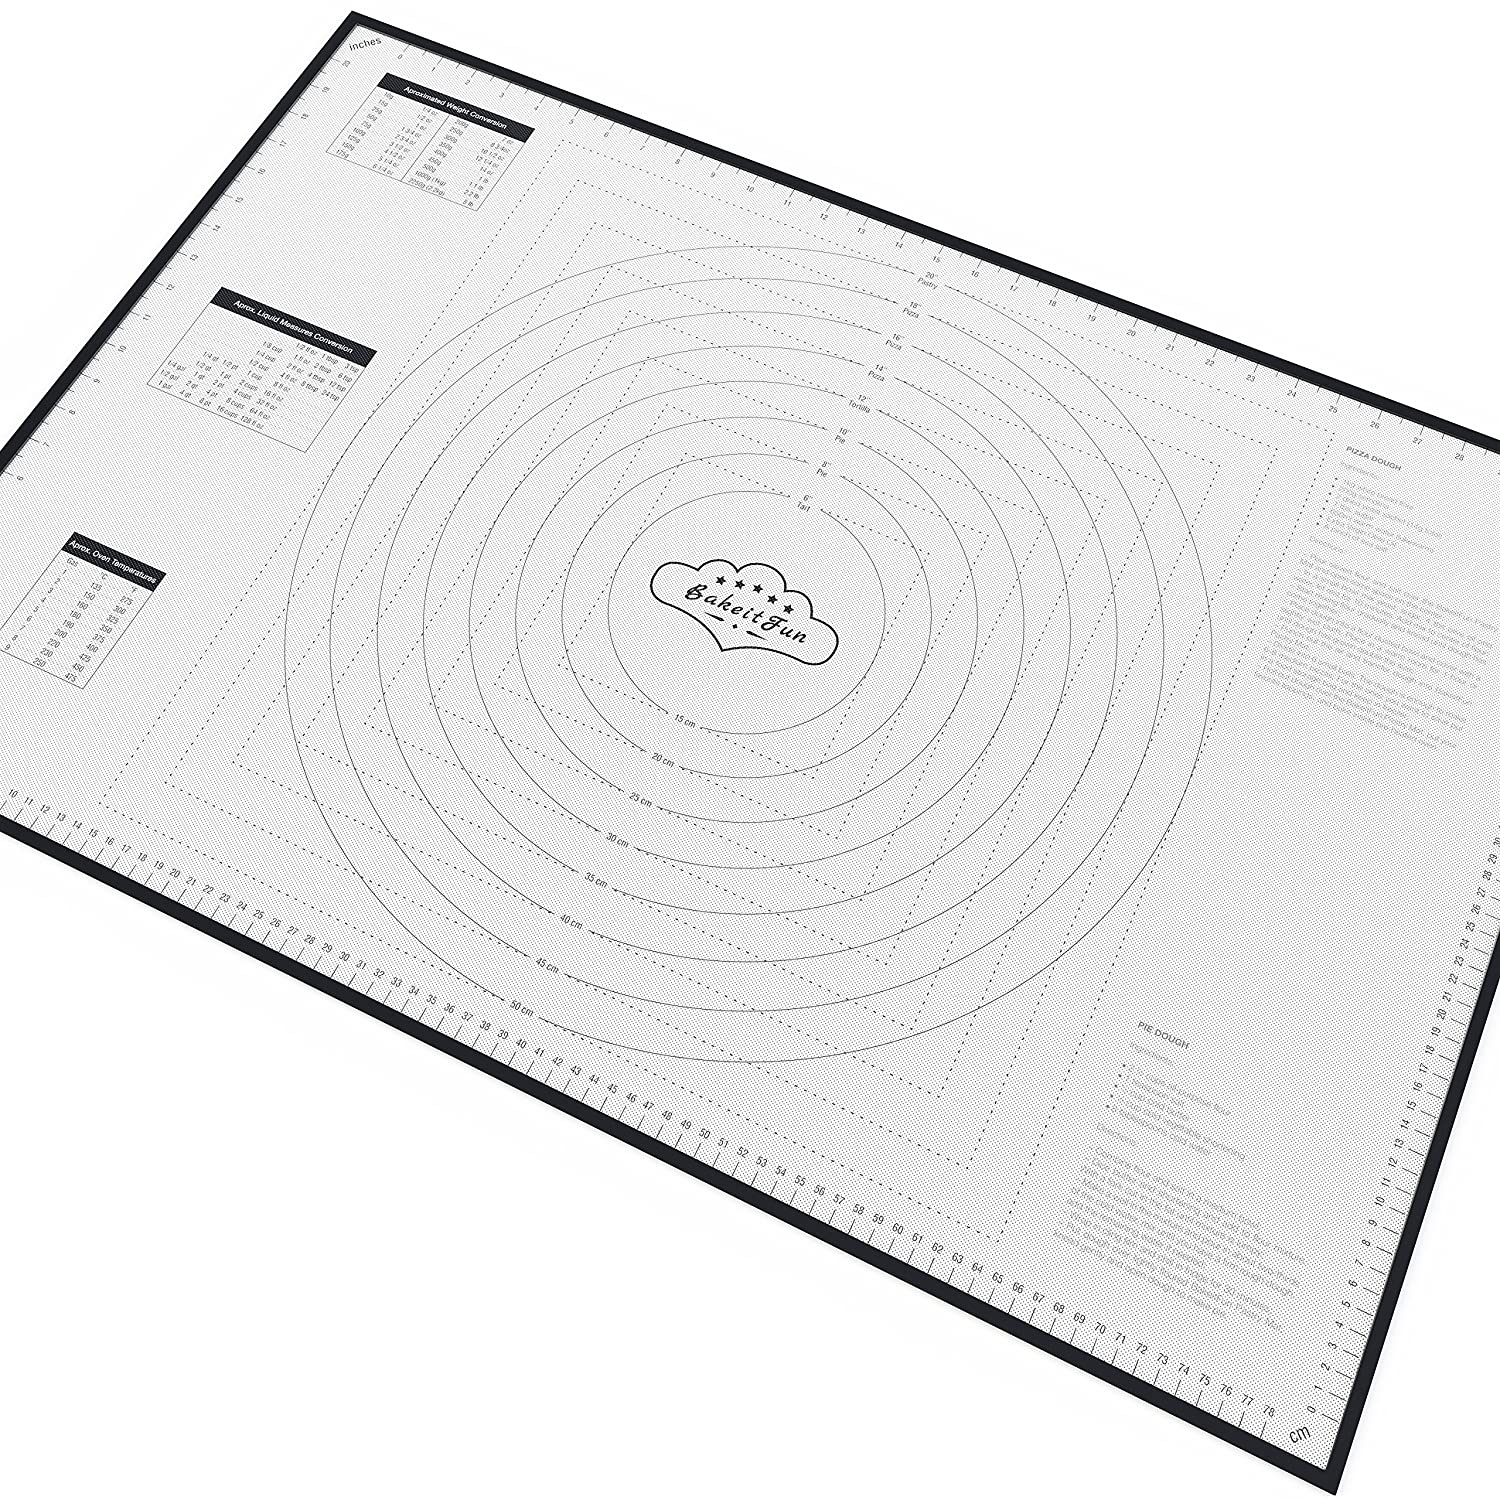 XX-Large Silicone Pastry Mat With Measurements, 33.5 x 22.5 Inches, Full Sticks To Countertop For Rolling Dough, Conversion Information Included, Perfect Fondant Surface, Black